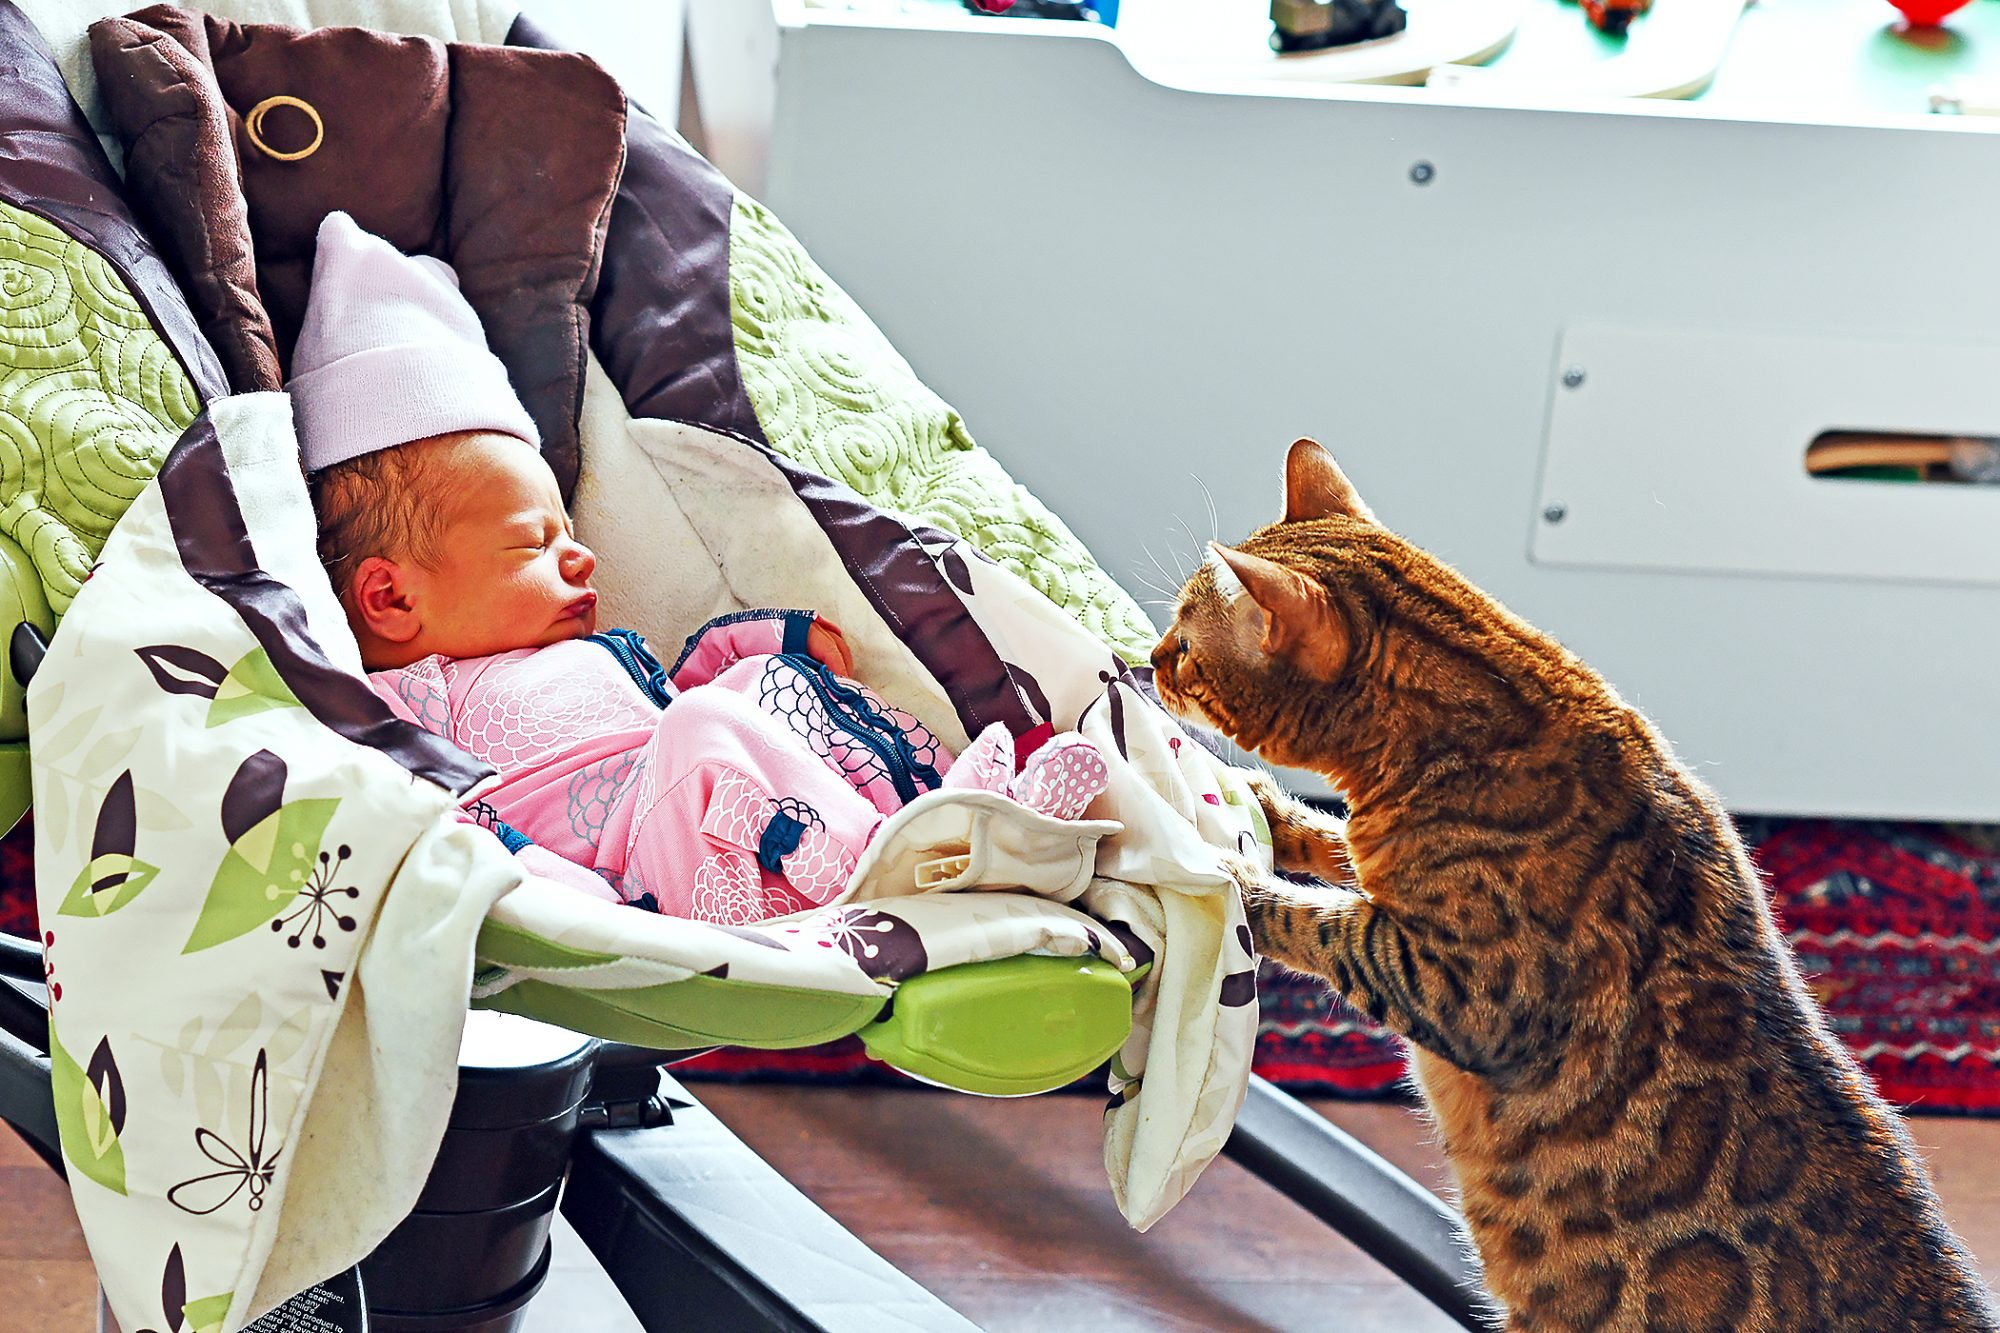 bengal cat staring at a baby sleeping in her swing